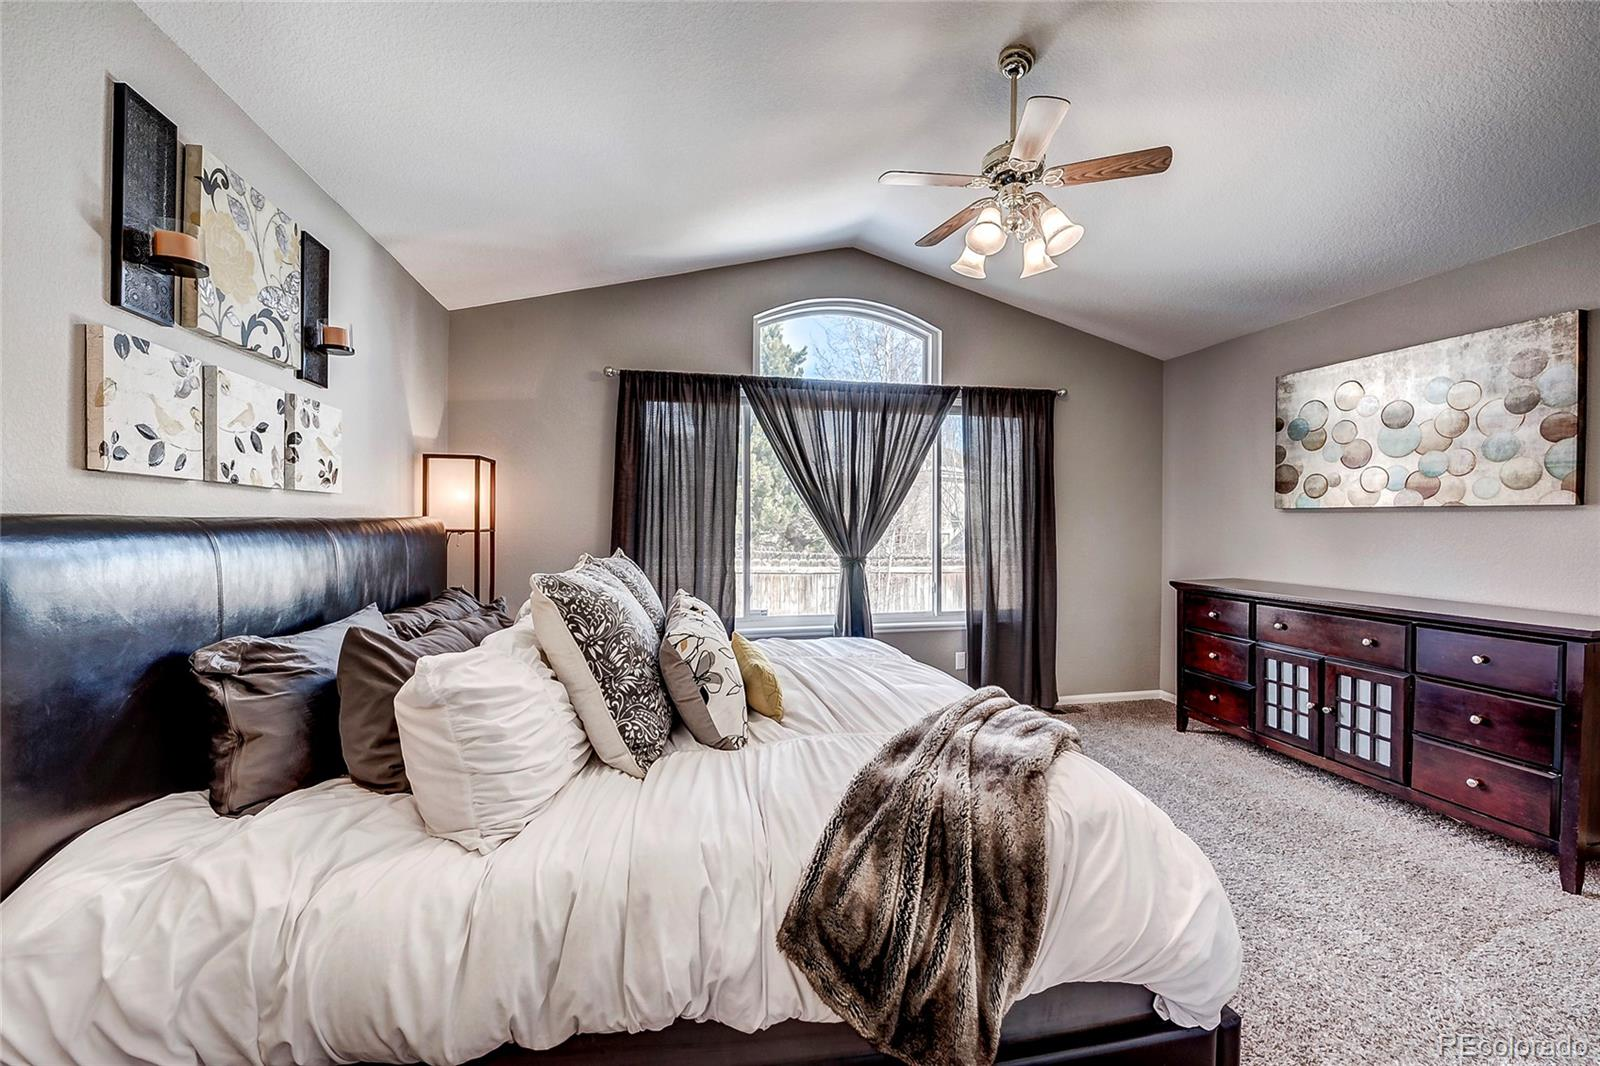 MLS# 4951528 - 19 - 15781 W 66th Place, Arvada, CO 80007